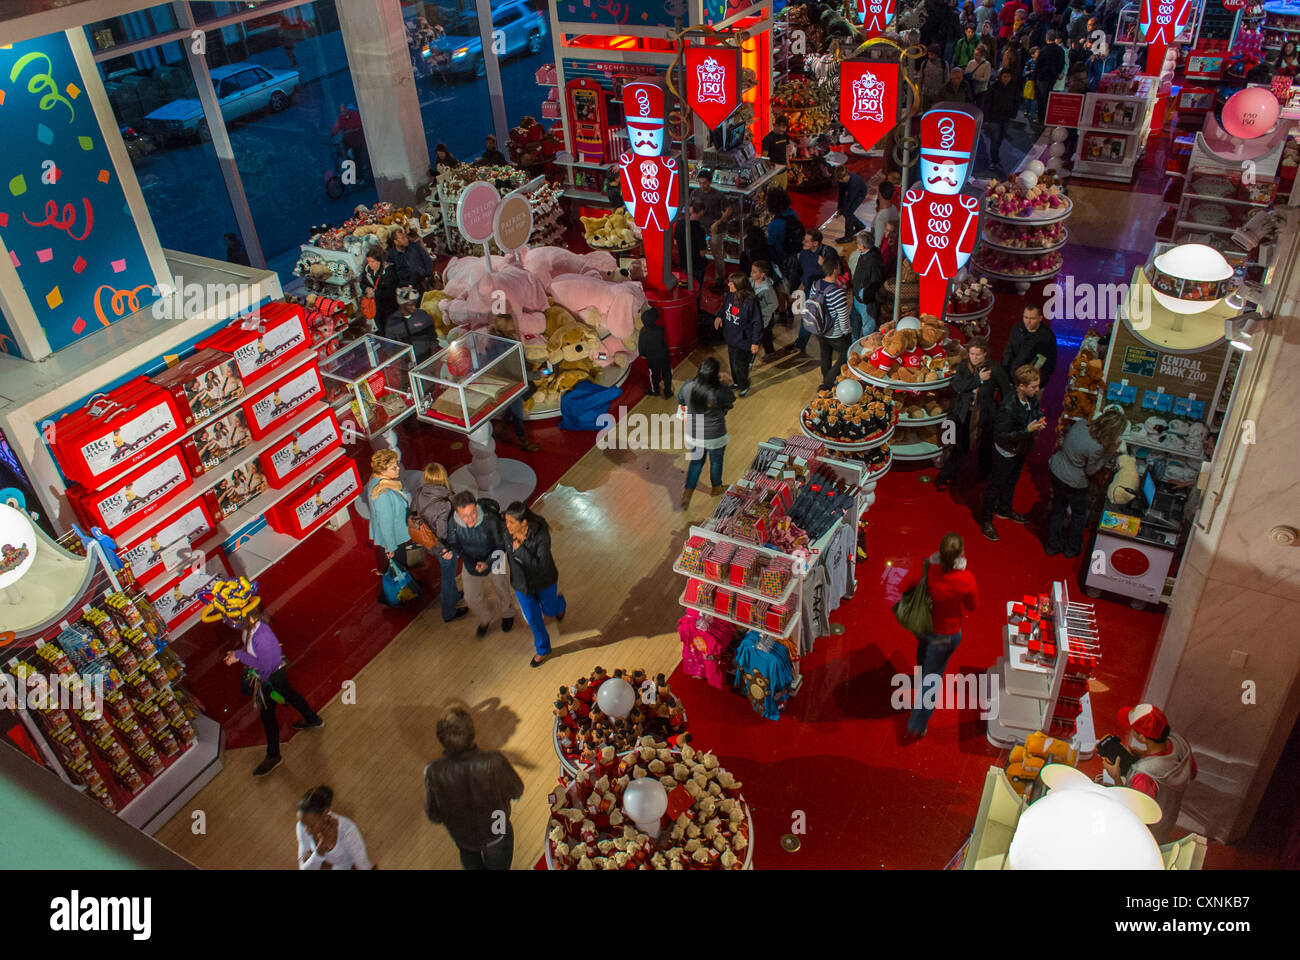 New york city ny usa people shopping fifth avenue fao new york city ny usa people shopping fifth avenue fao schwartz toy store overview aerial manhattan sciox Image collections